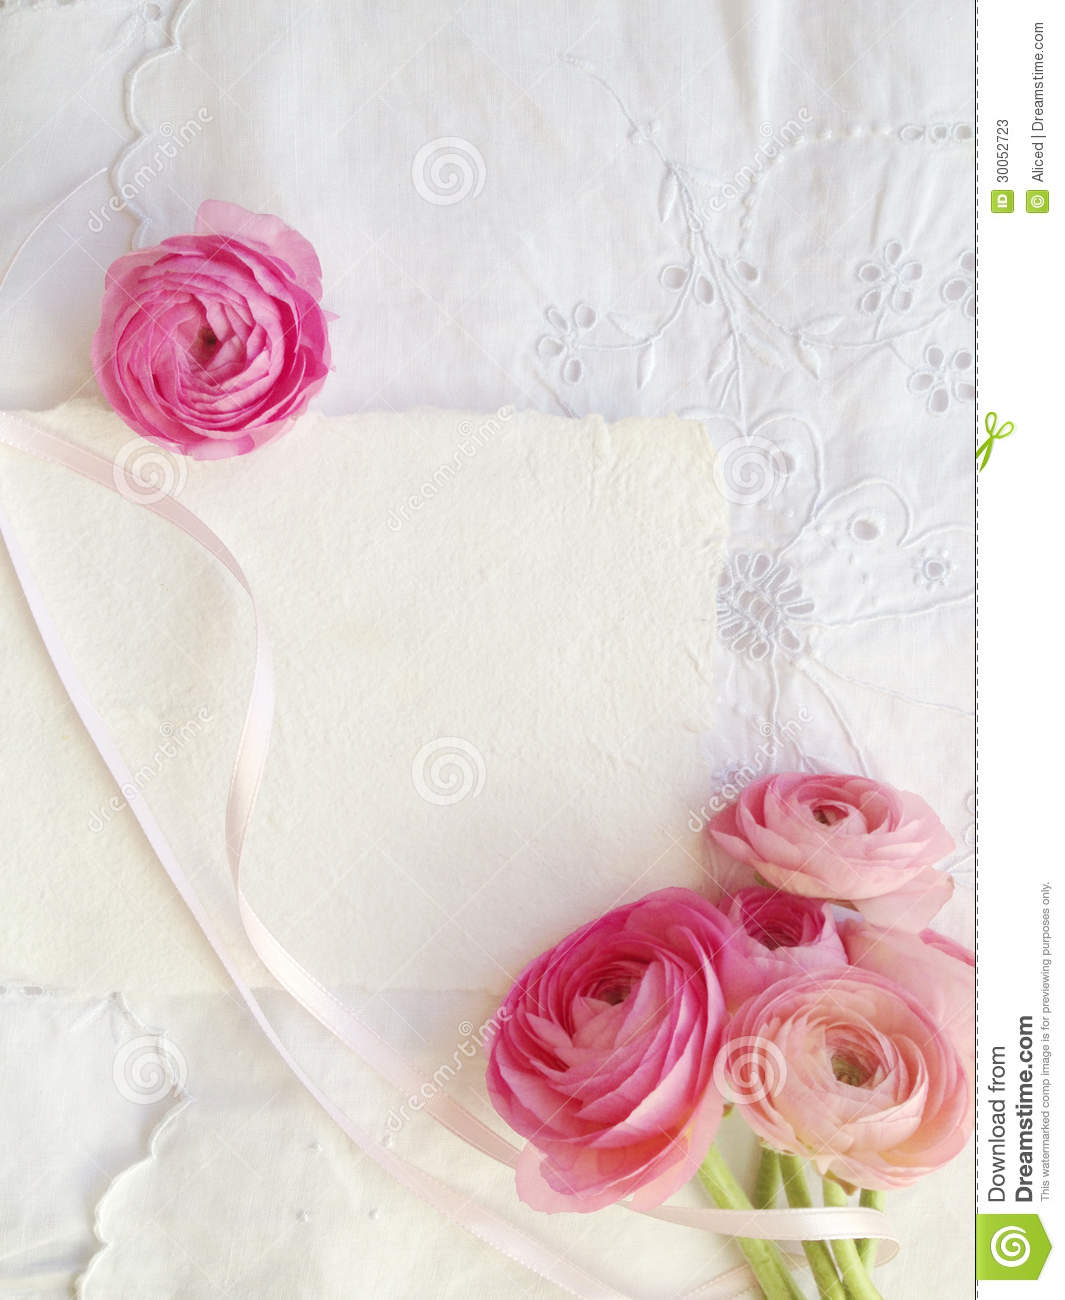 Decorative Fabric With Pink Ranunculus And Copy Space Stock Image